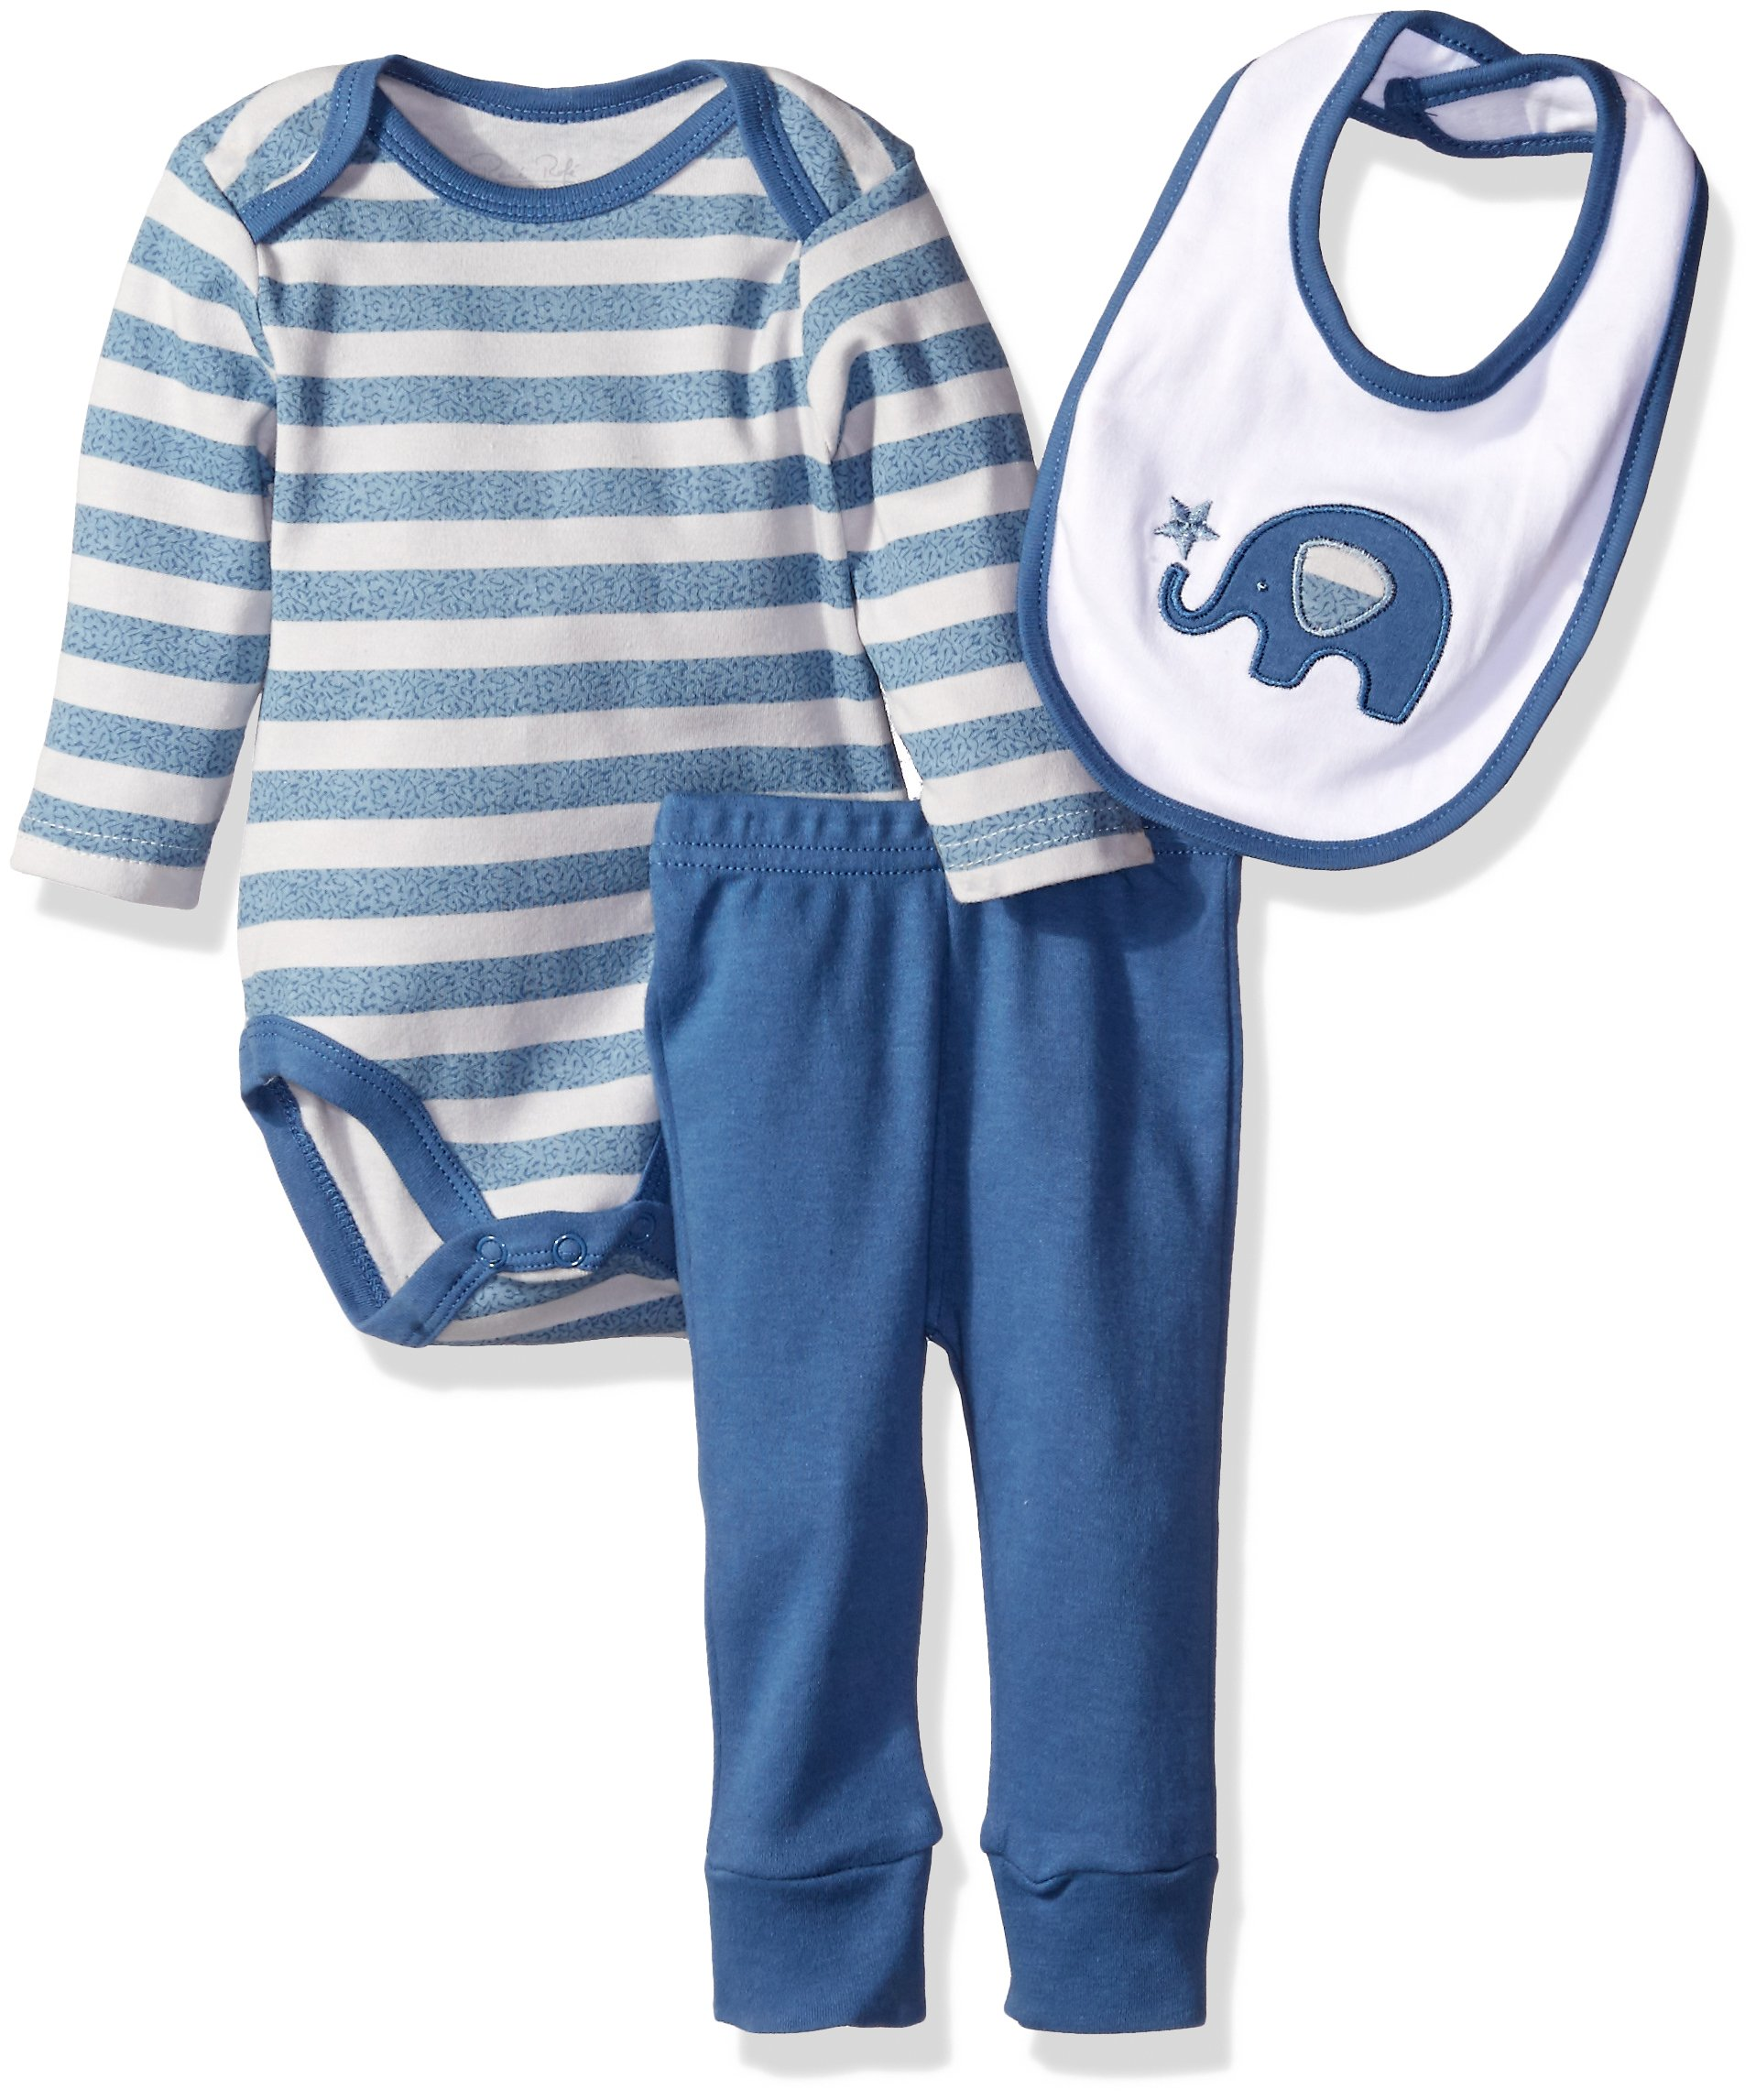 Best Rated in Baby Boys Layette Sets & Helpful Customer Reviews